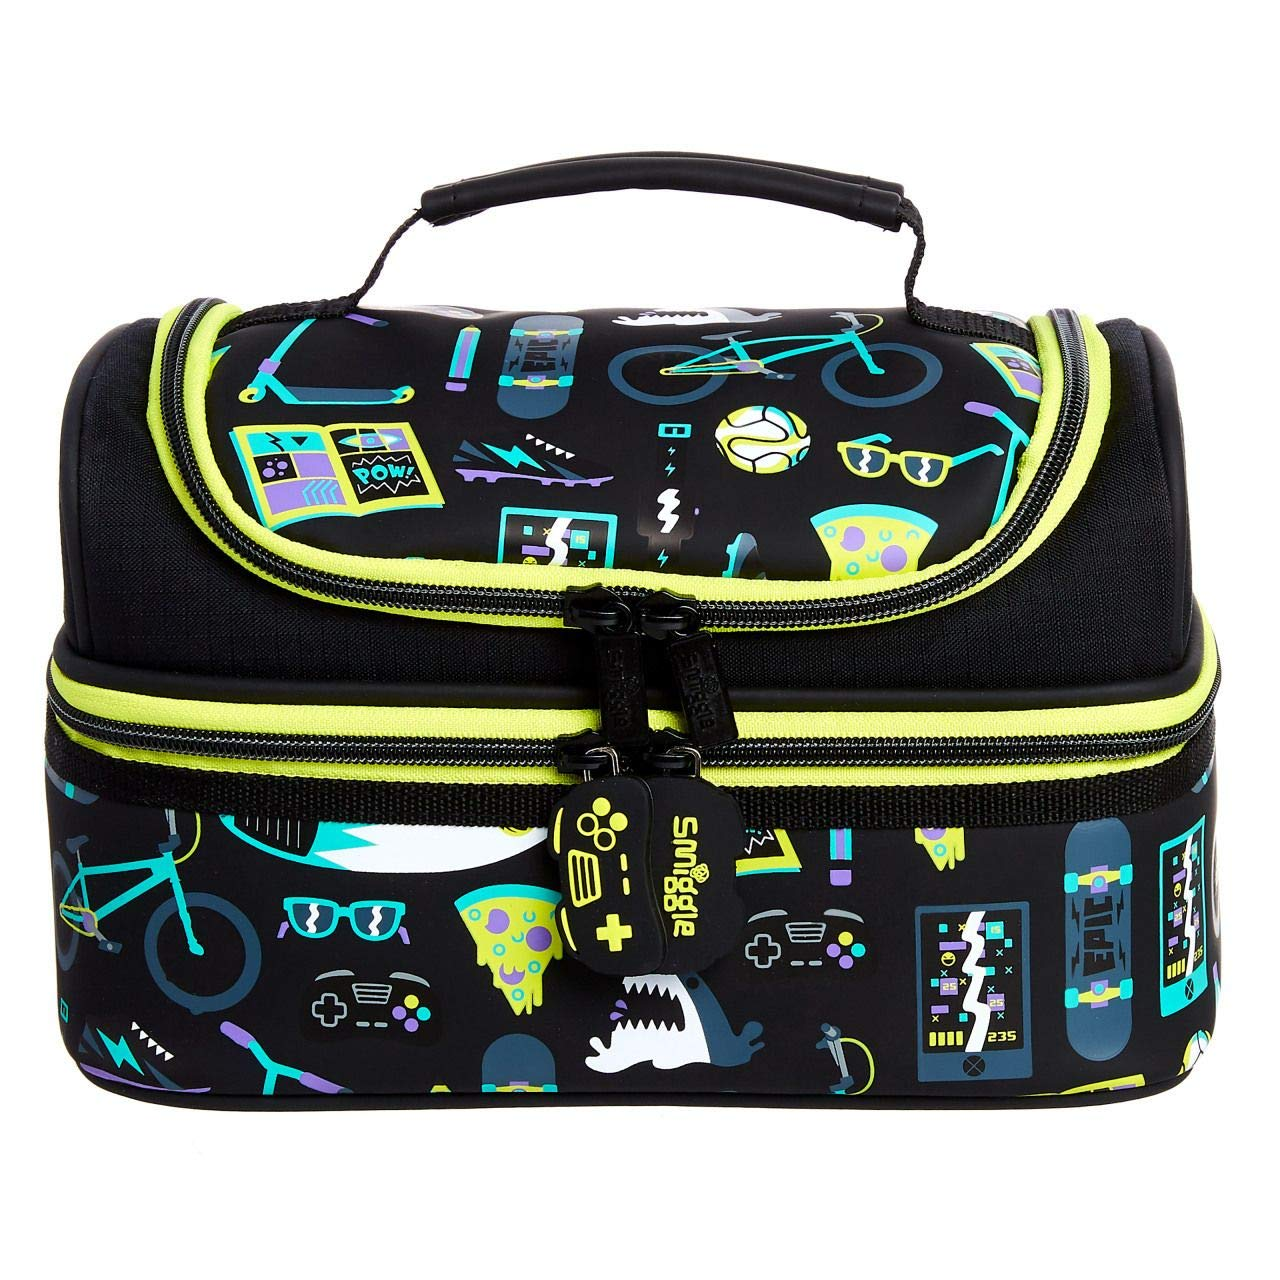 Smiggle Pop Double Decker School Lunchbox for Girls & Boys with Dual Black